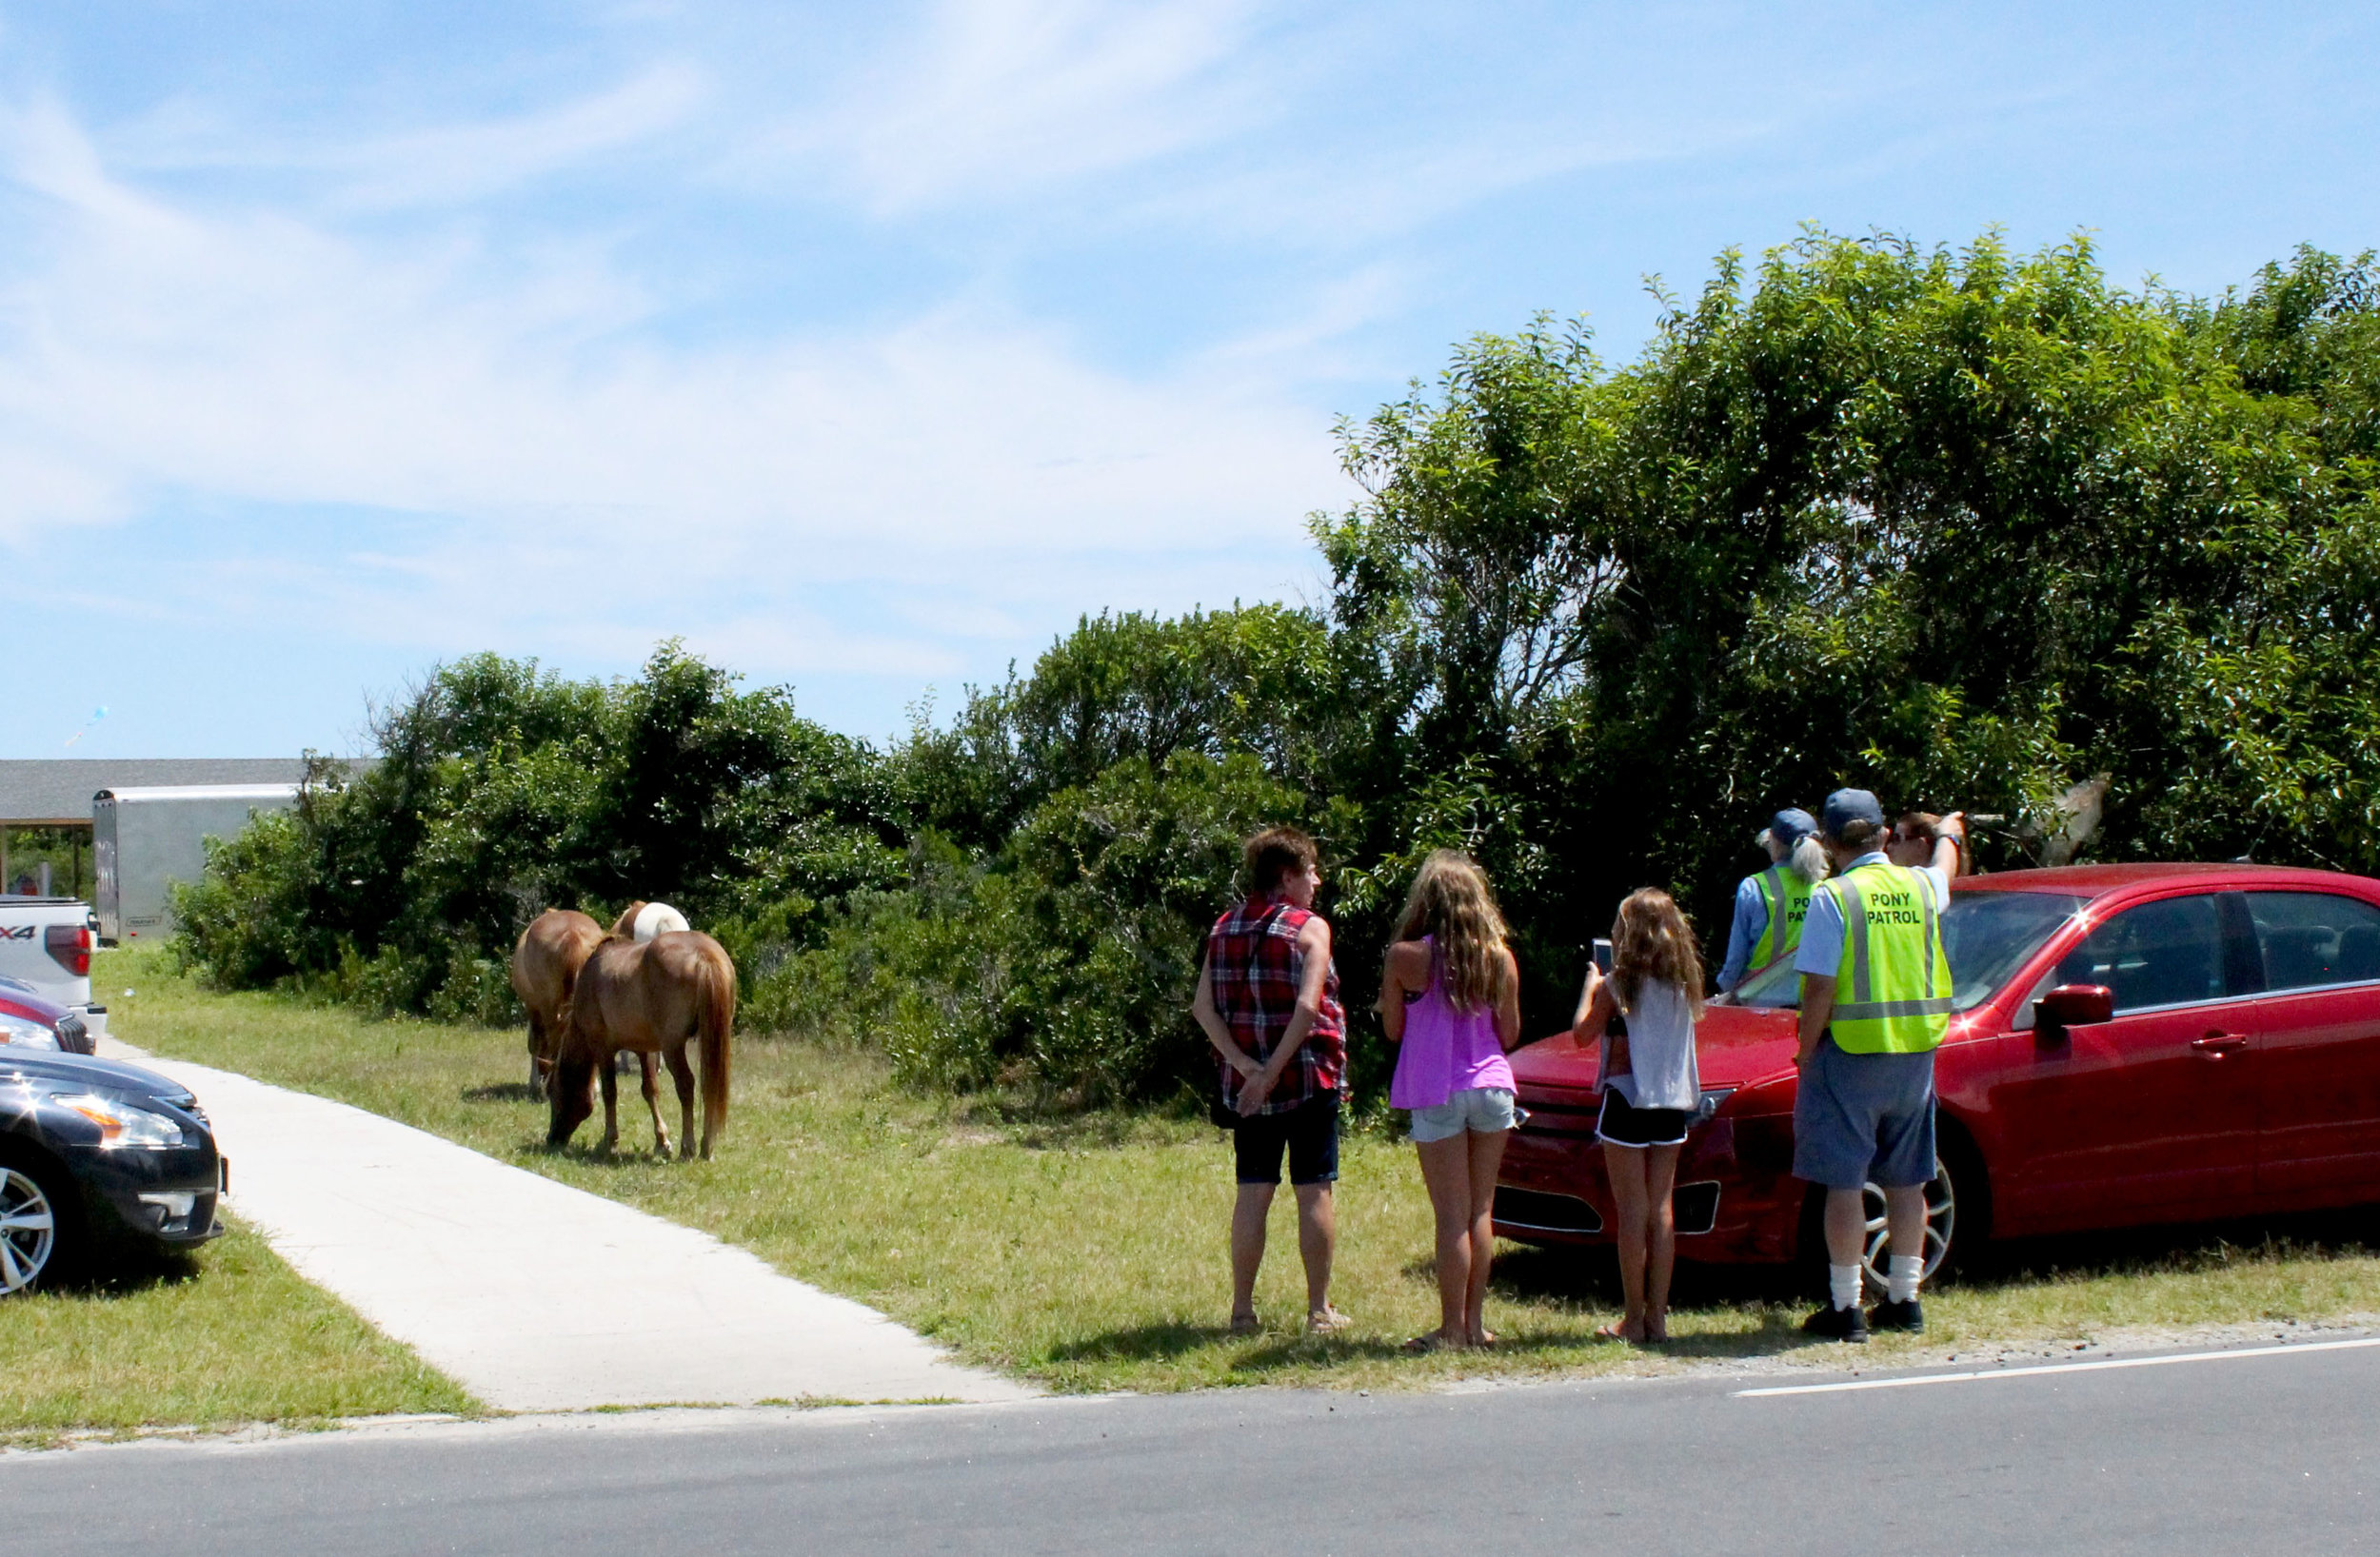 Pony patrol protecting the horses and people